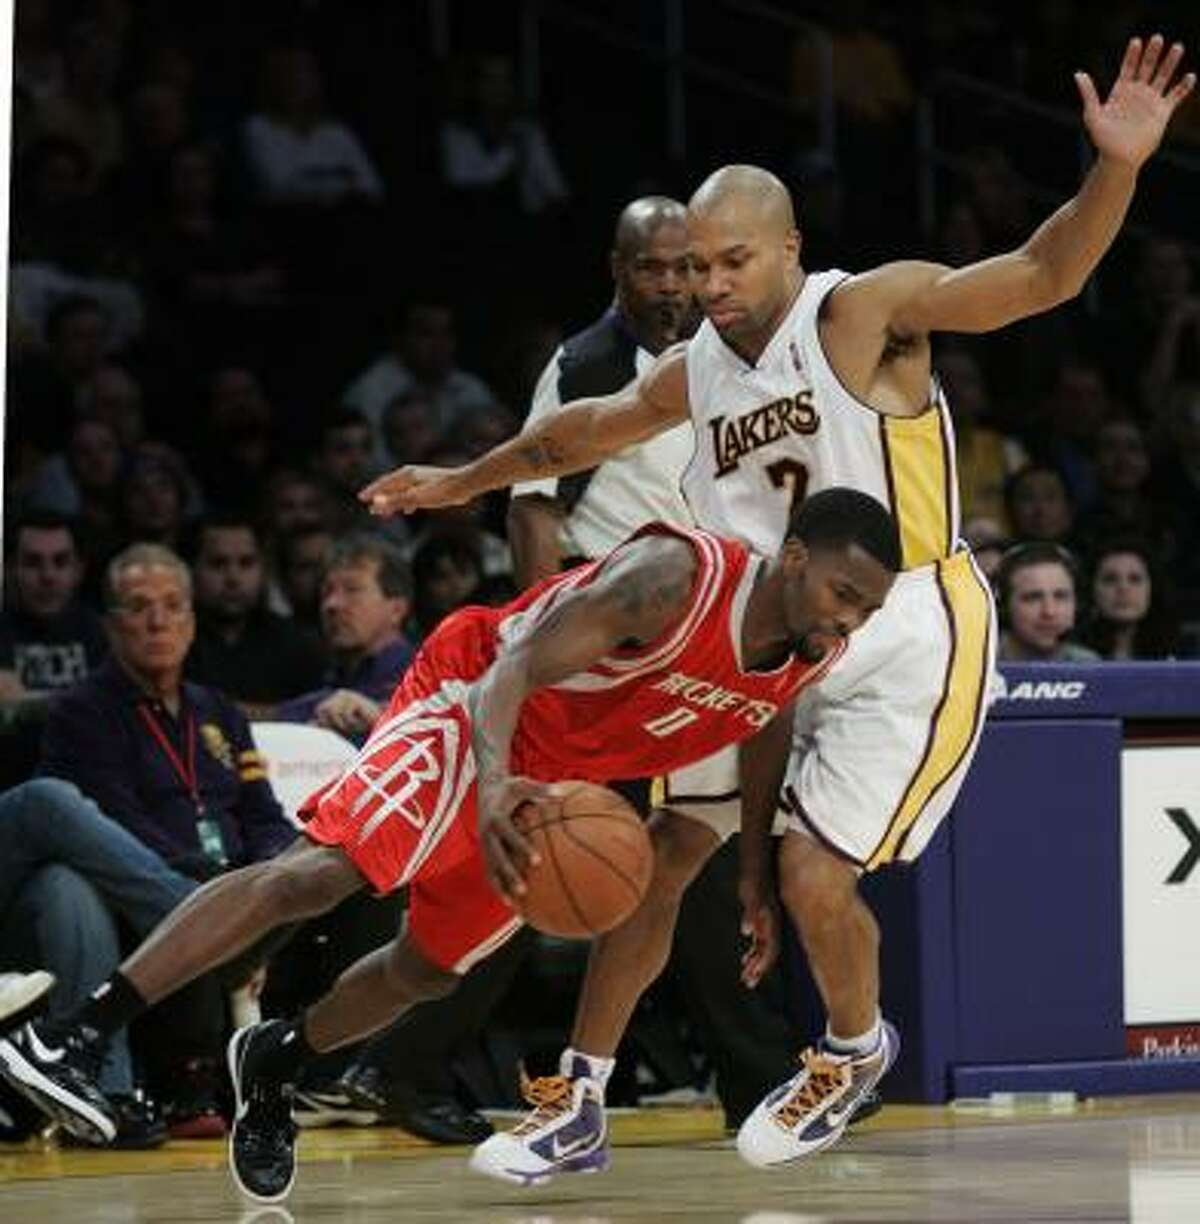 Rockets guard Aaron Brooks (0) drives around Lakers guard Derek Fisher during the second half.